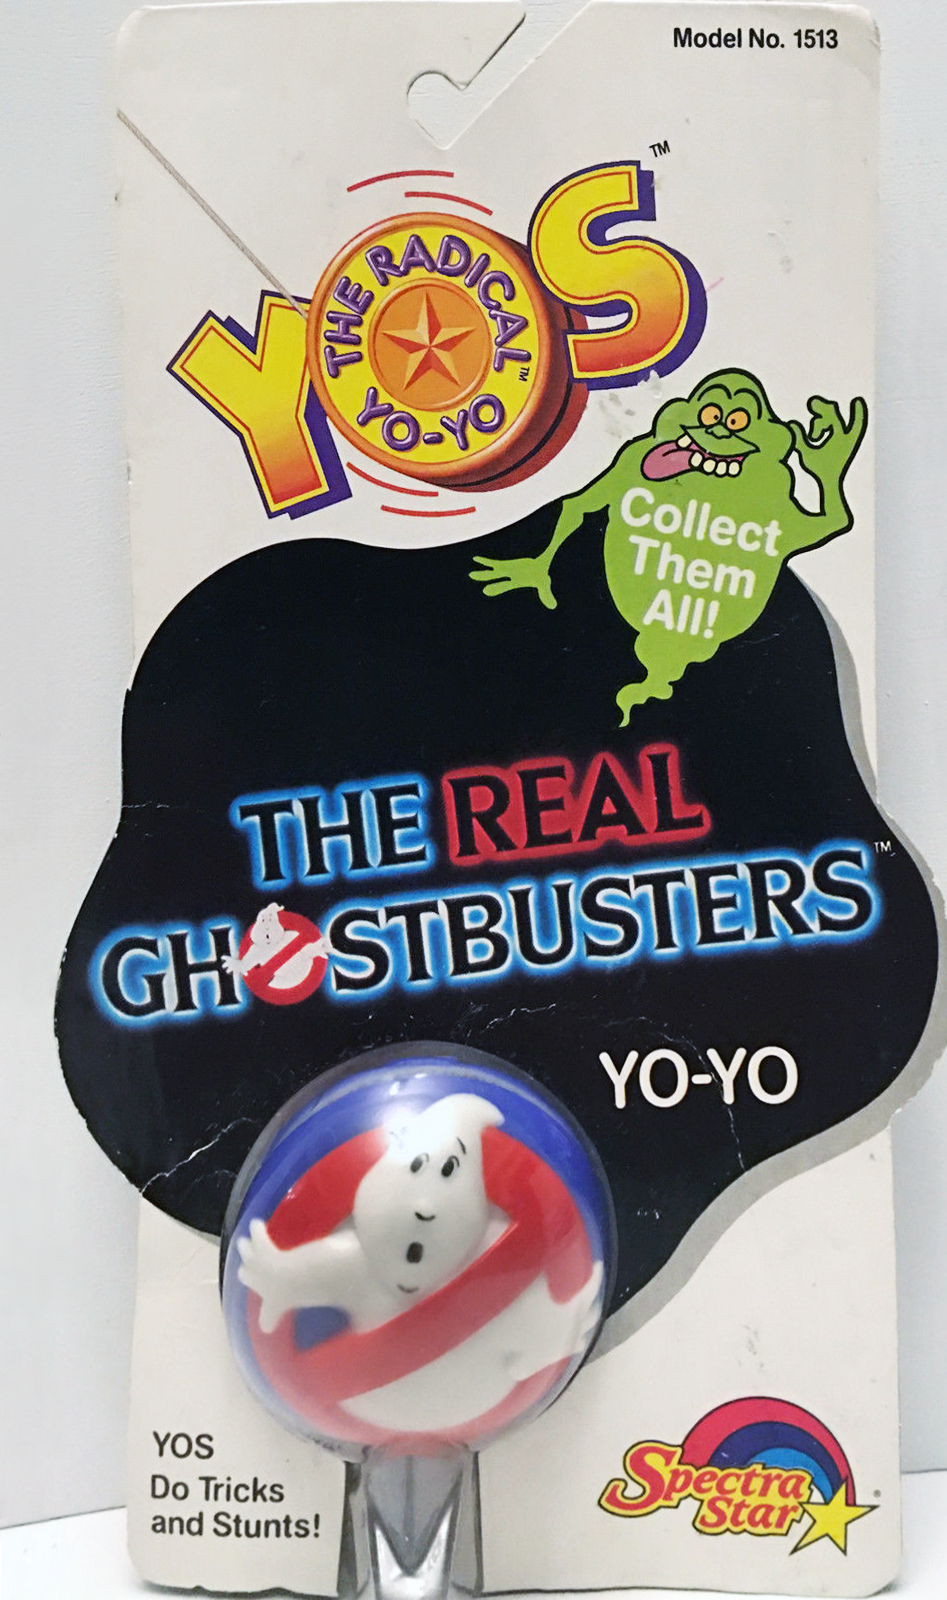 The Real Ghostbusters: Yo-Yo